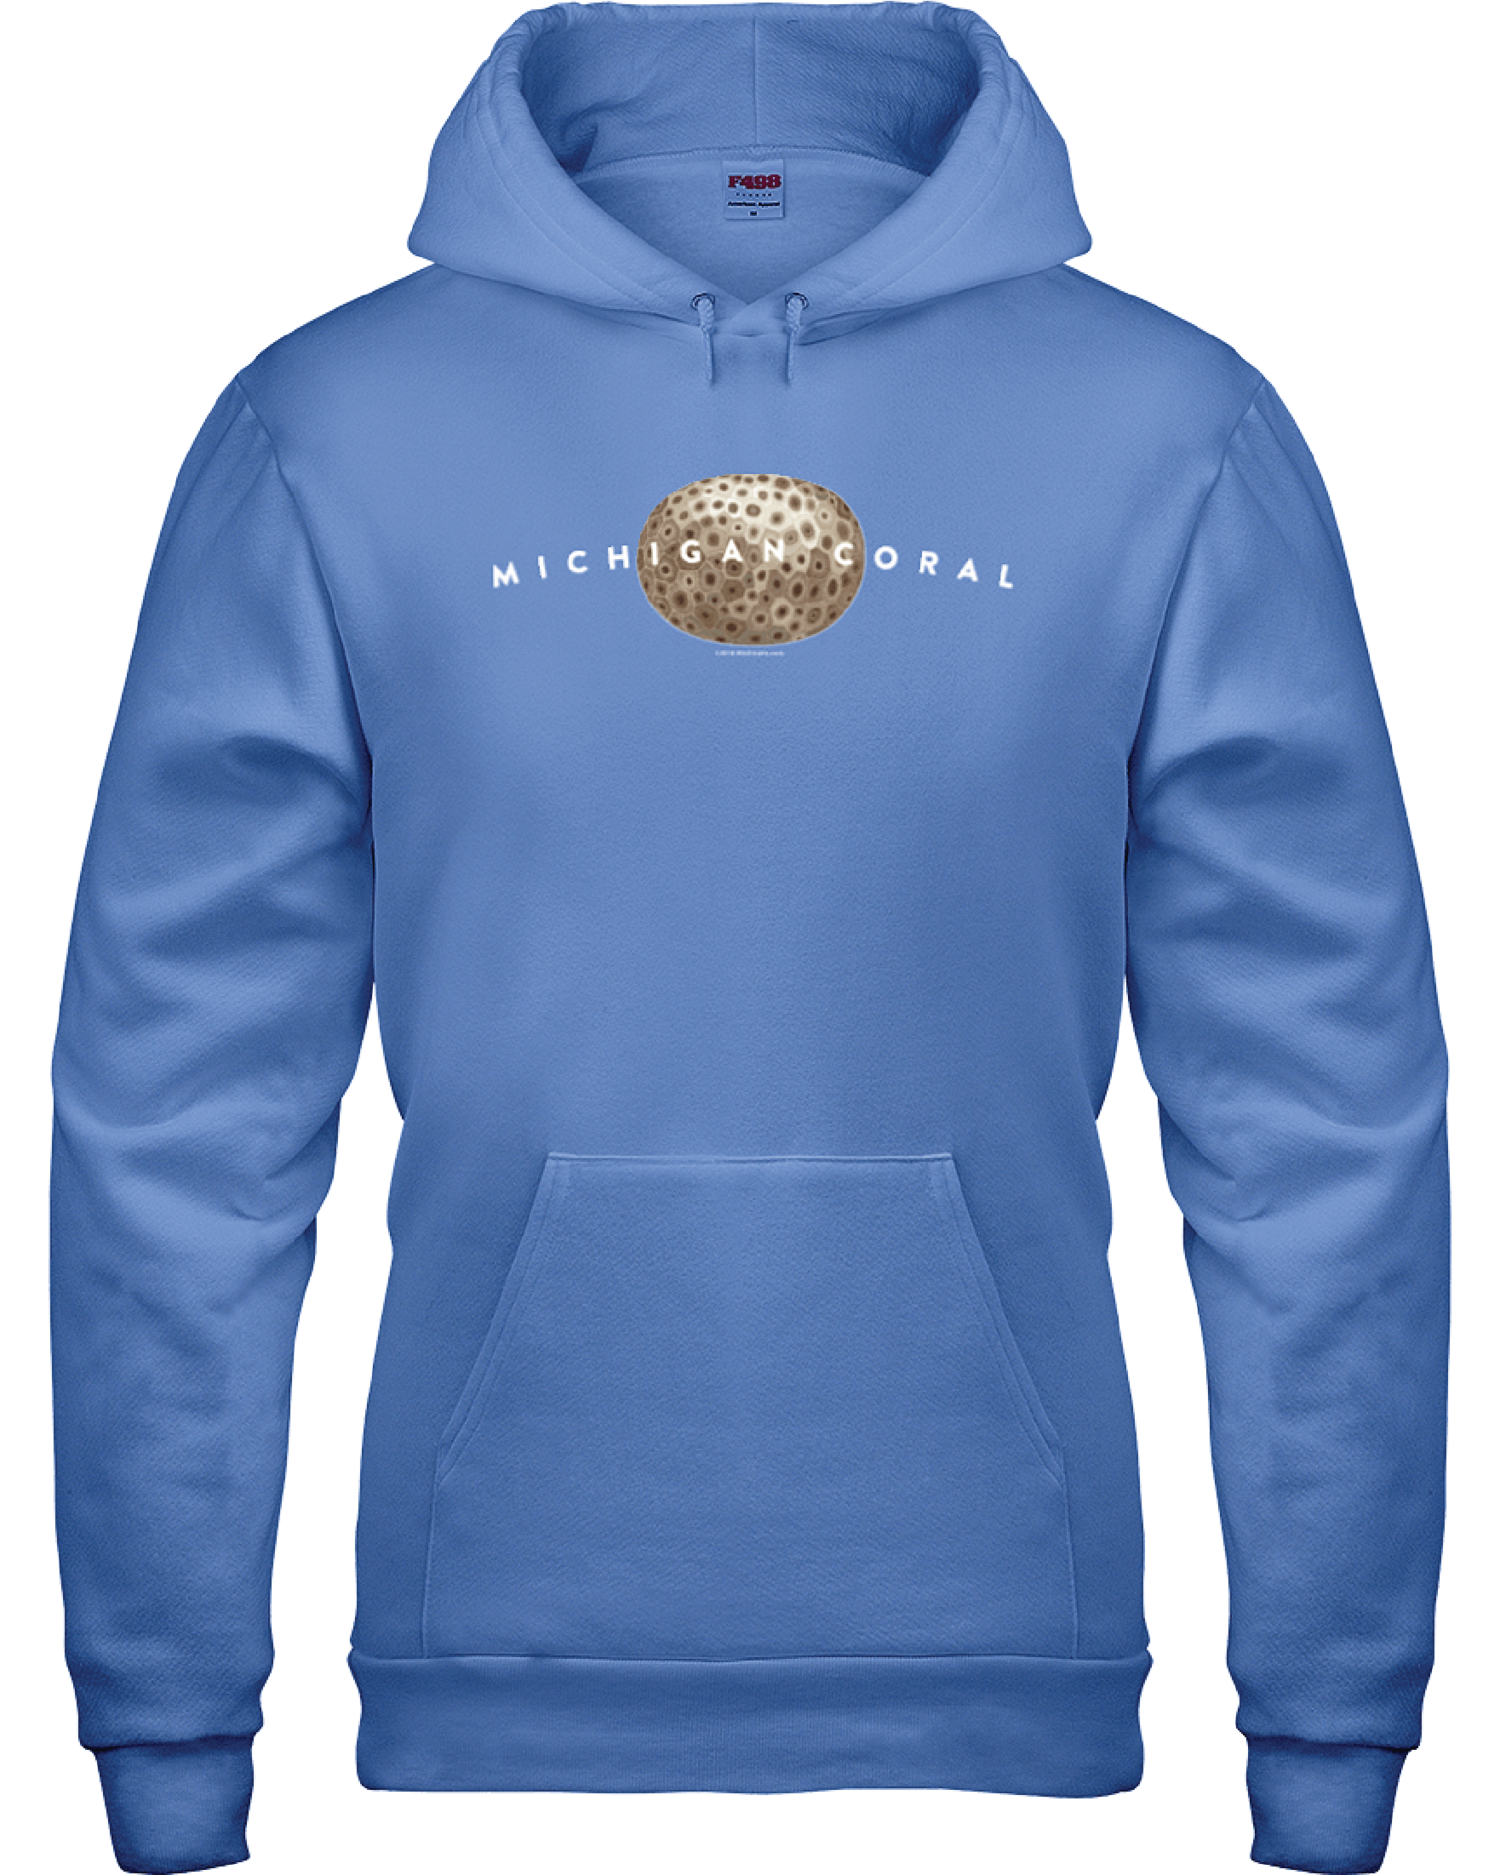 8a85e23d Carolina Blue Coral Hoodie — The Michicana Collection